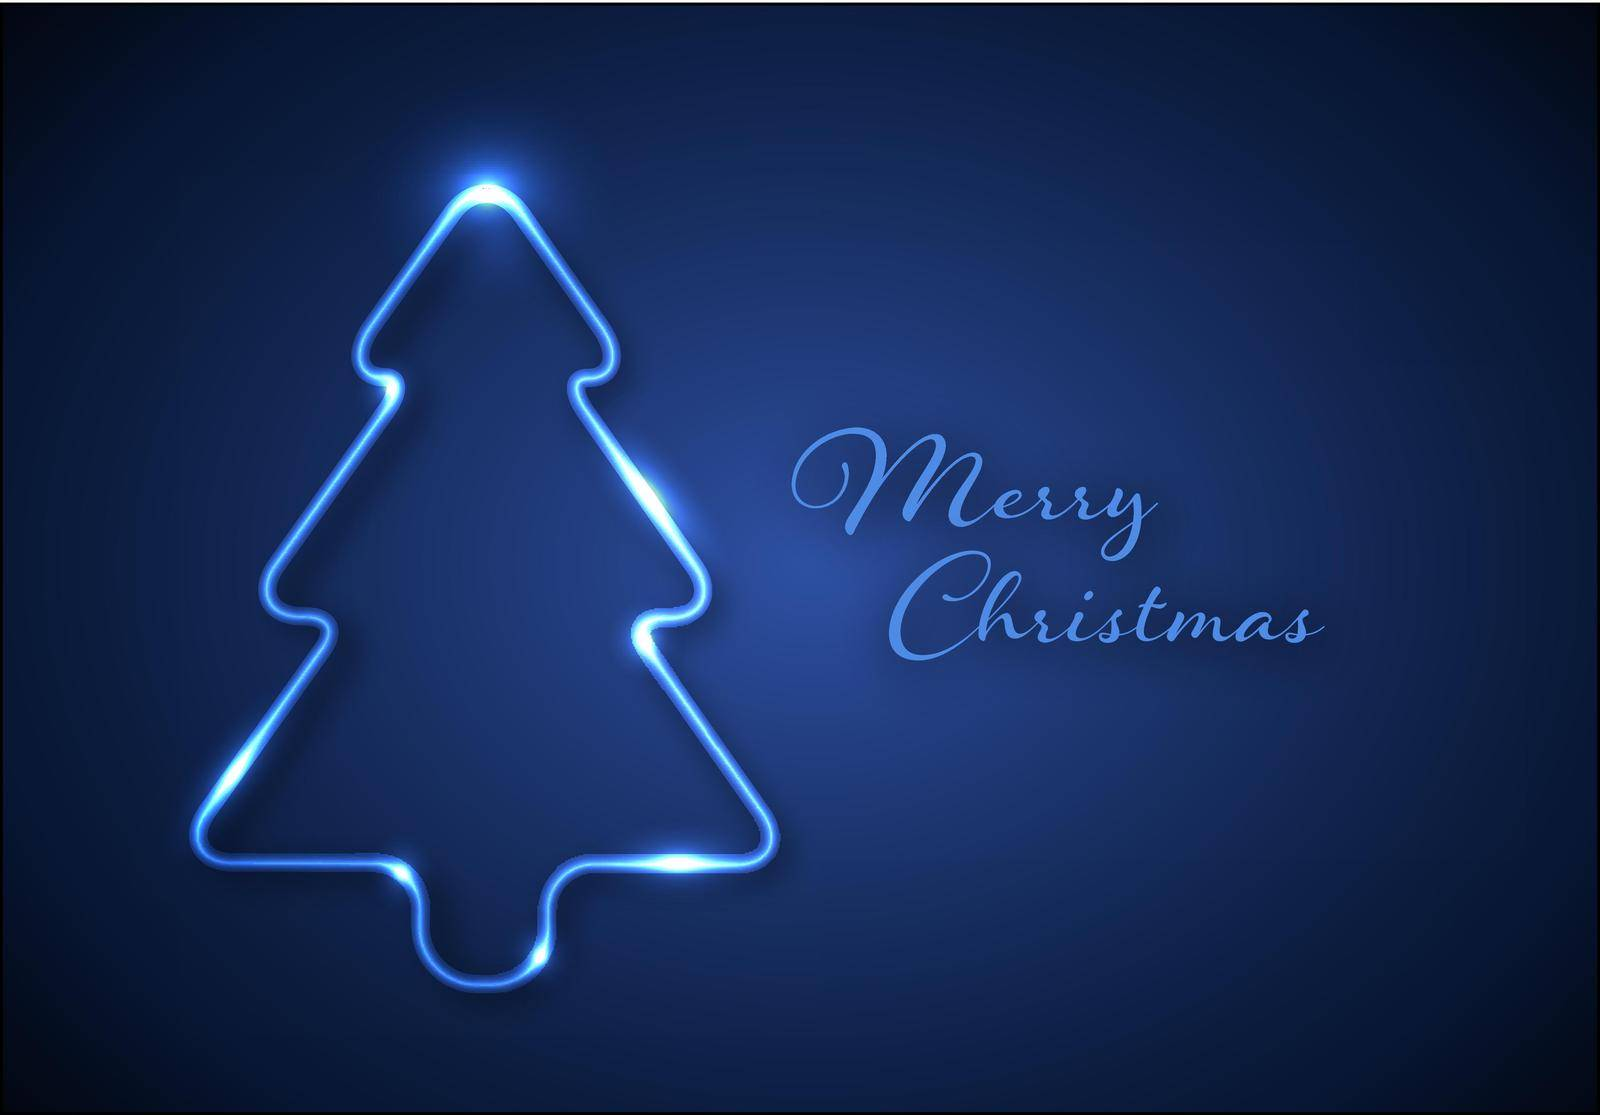 Christmas card with christmas tree made from blue neon tube, some lights - blue version